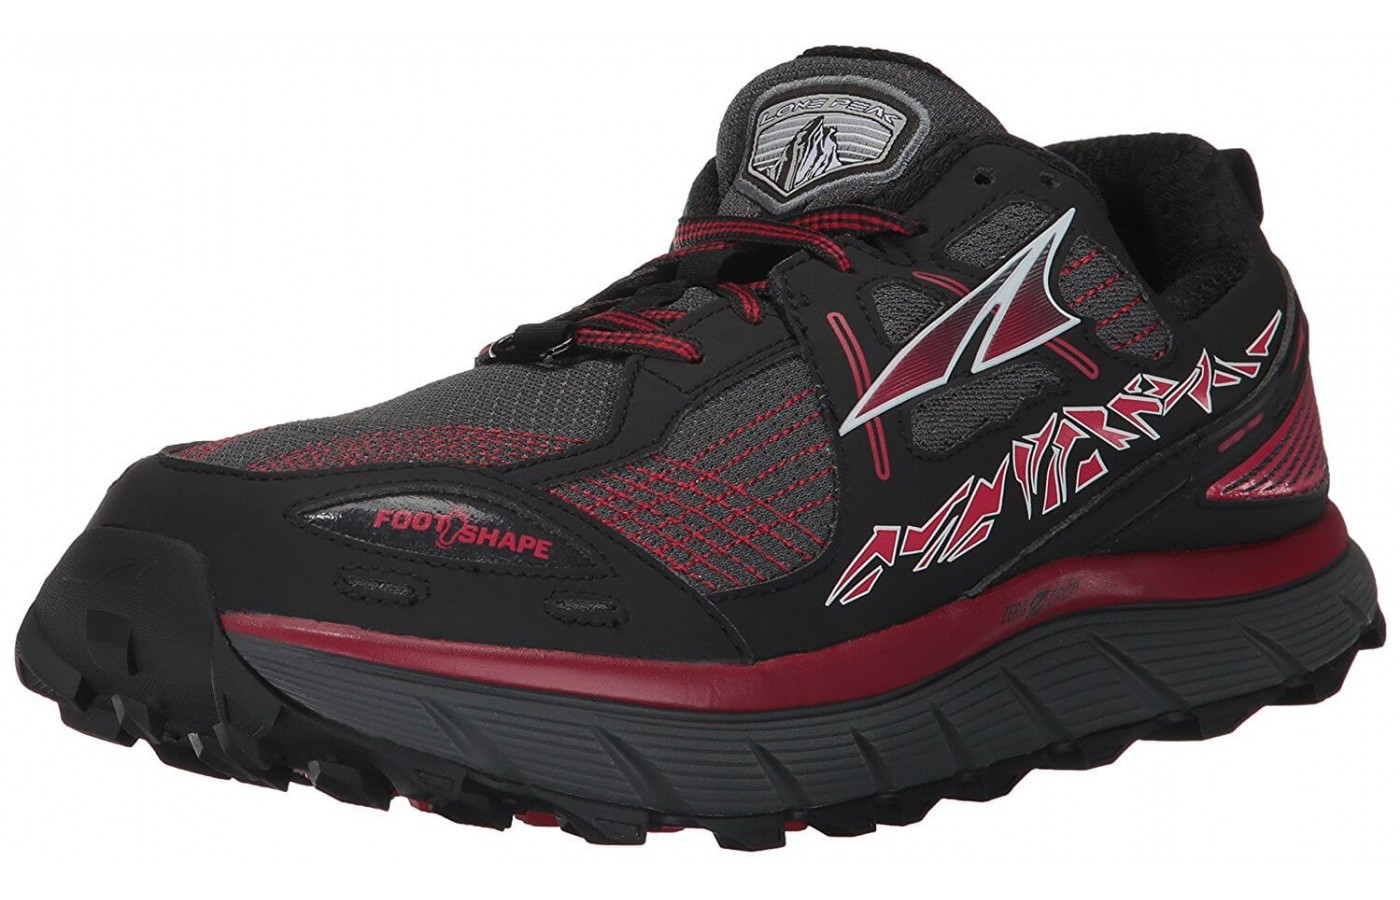 The Altra Lone Peak 3.5 features a new 4 point gaiter system